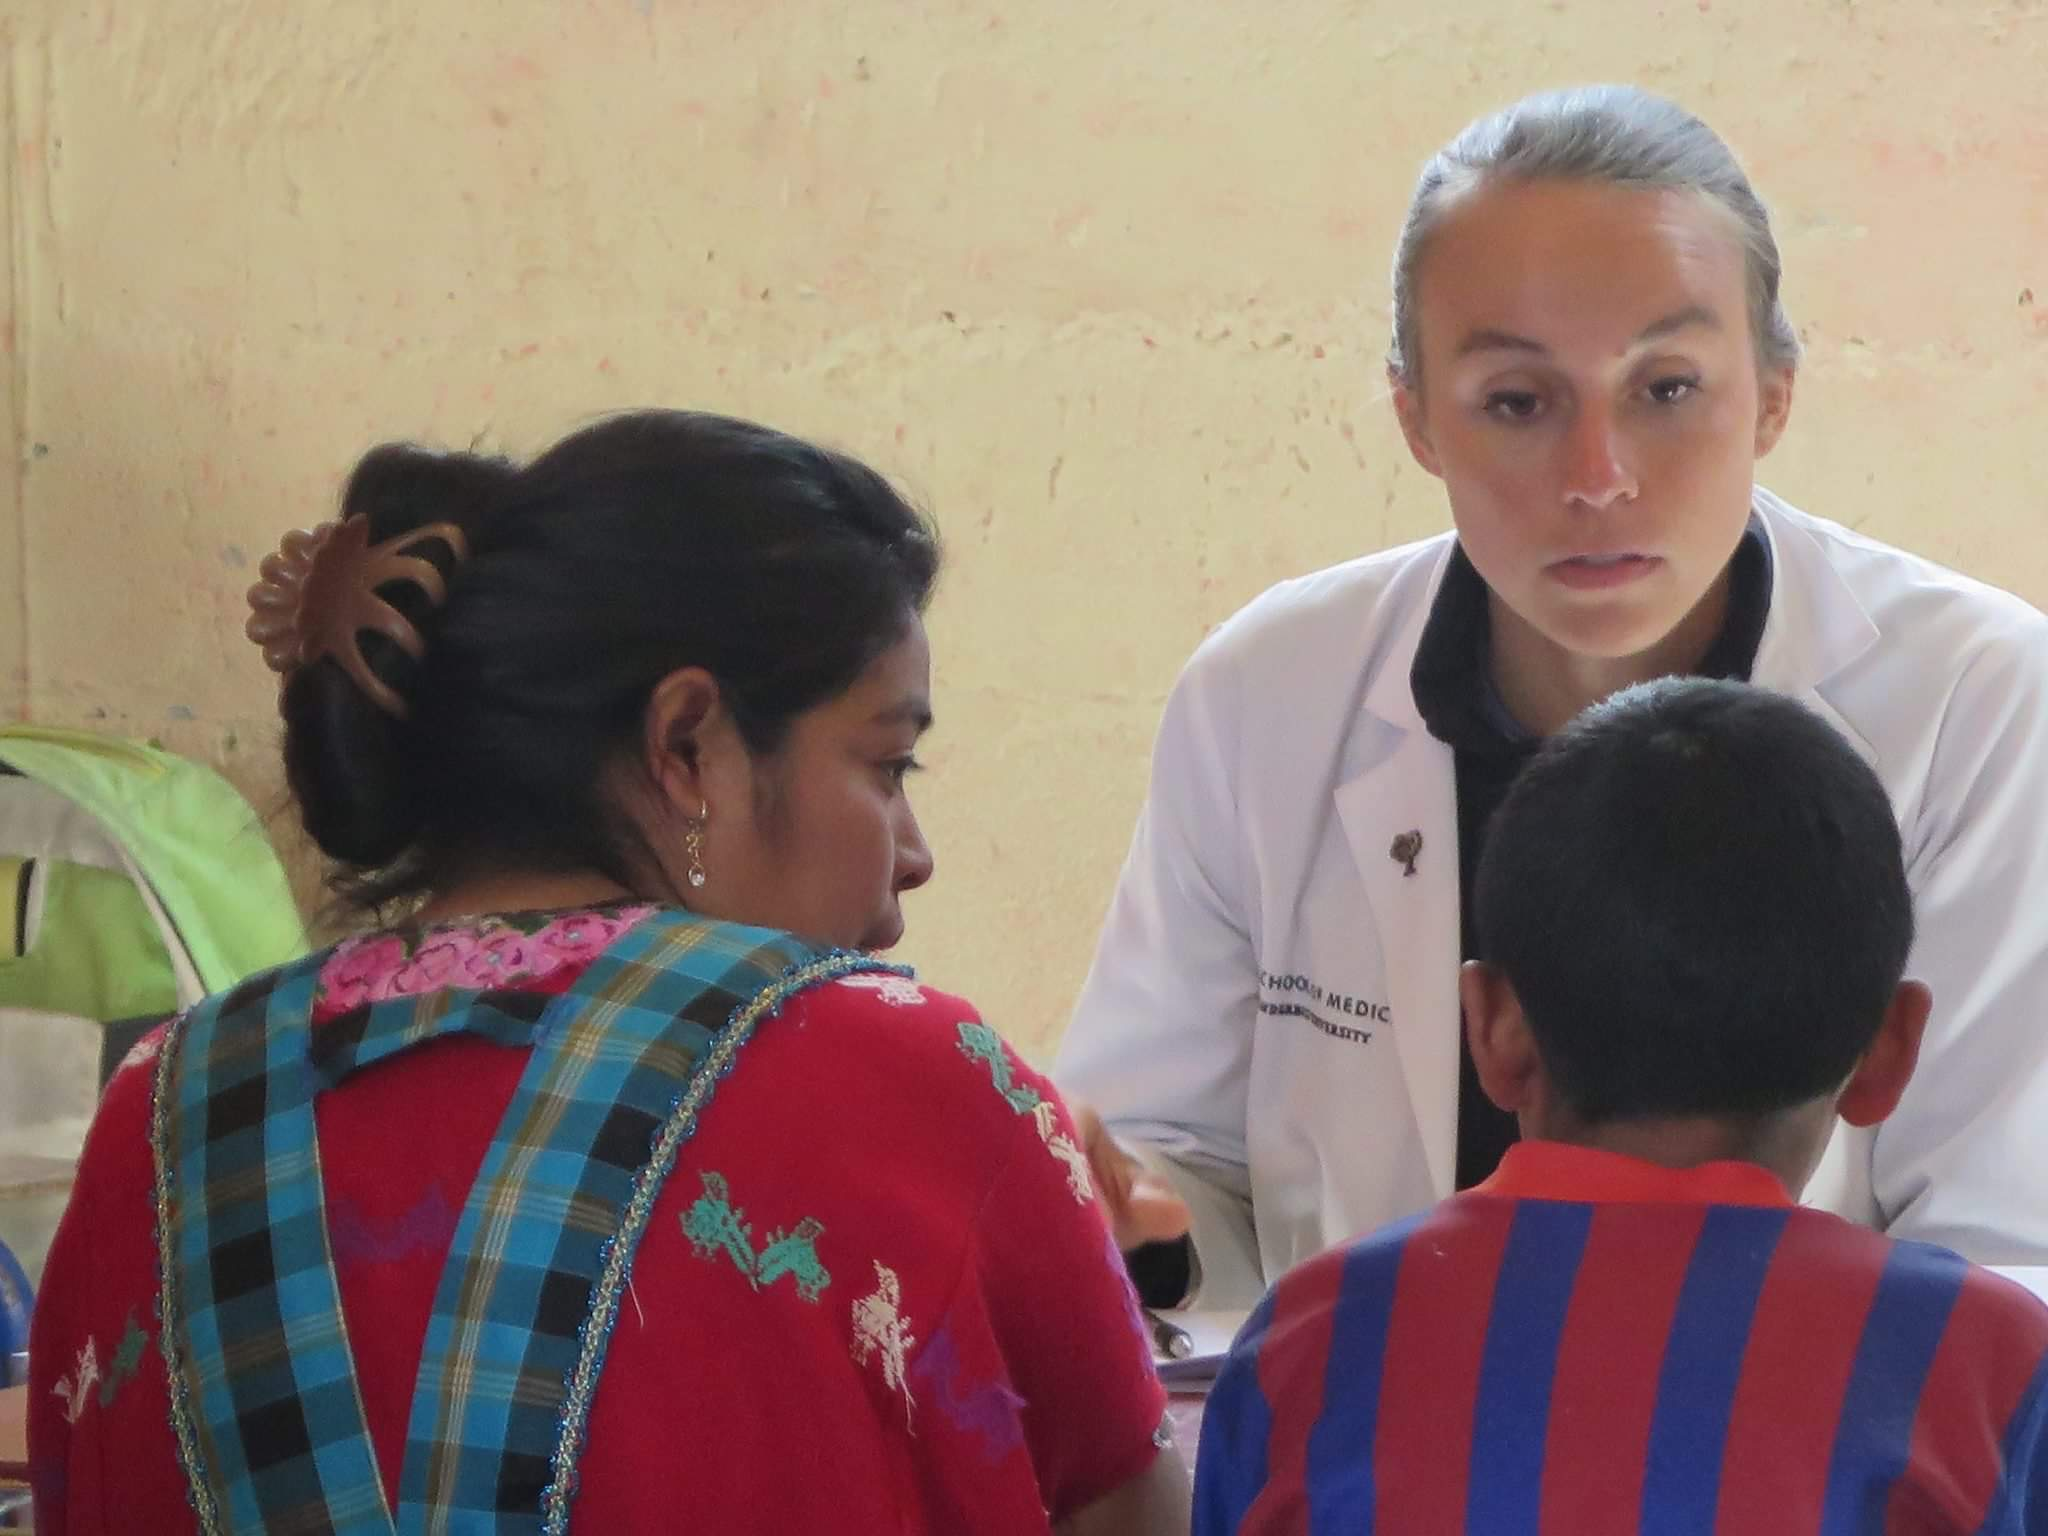 Elizabeth speaking with peds patient in mobile clinic.jpeg